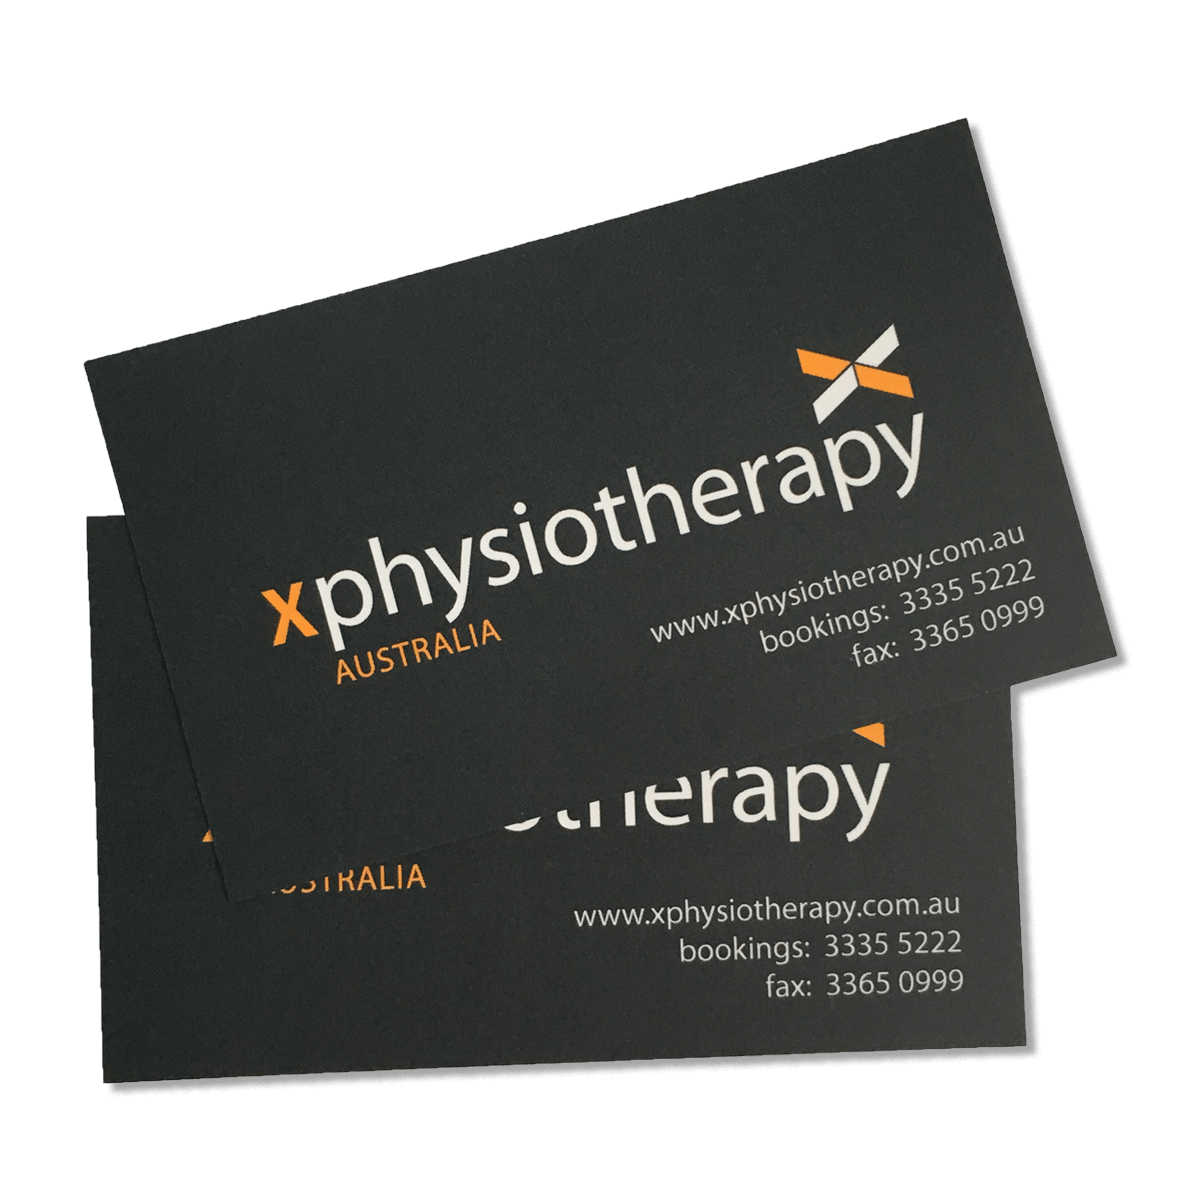 X-Radiology - Client Story